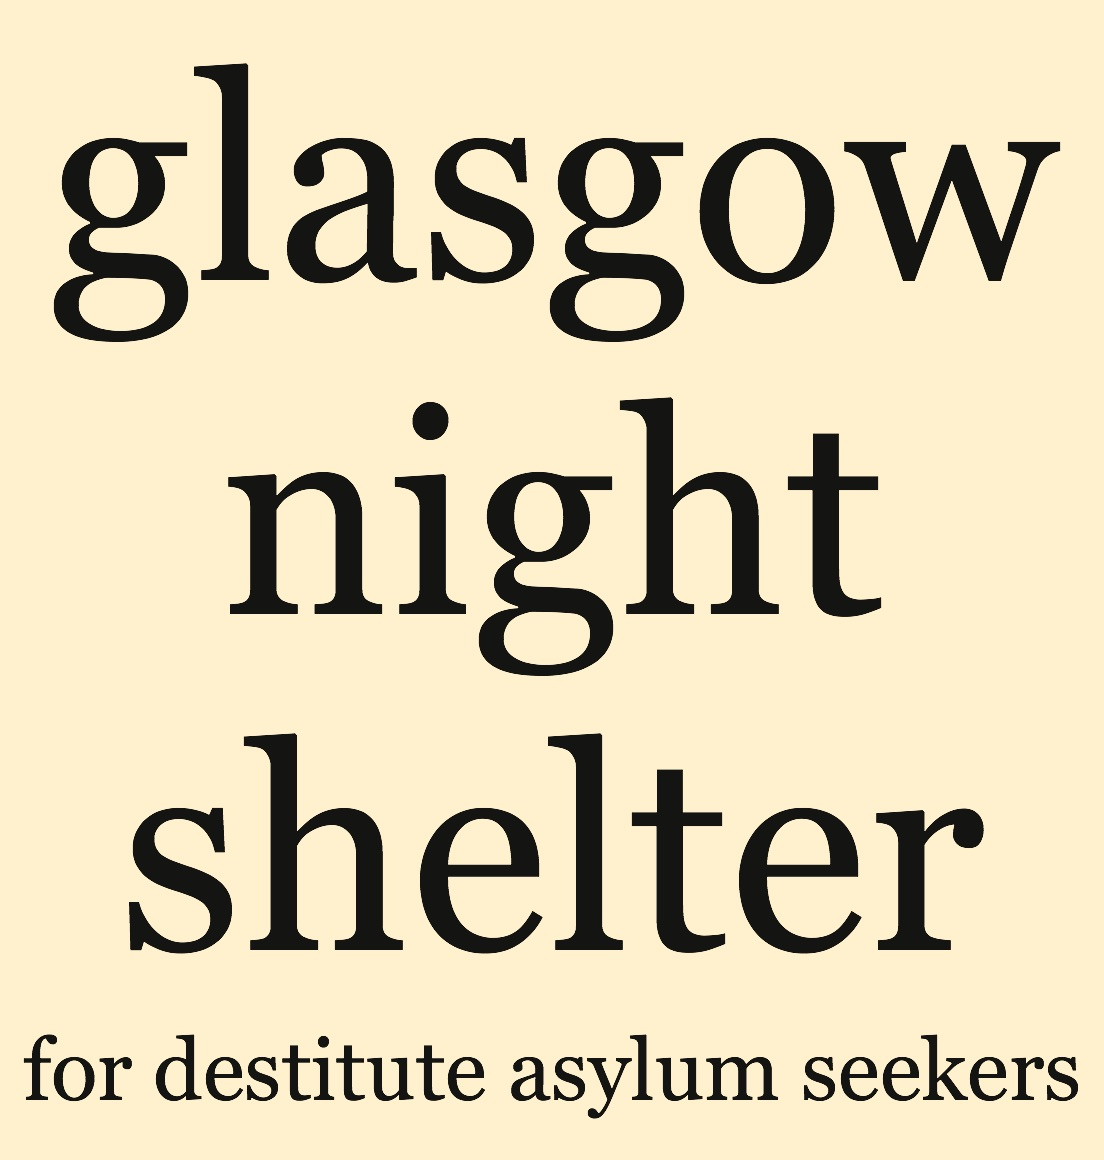 Glasgow Night Shelter For Destitute Asylum Seekers